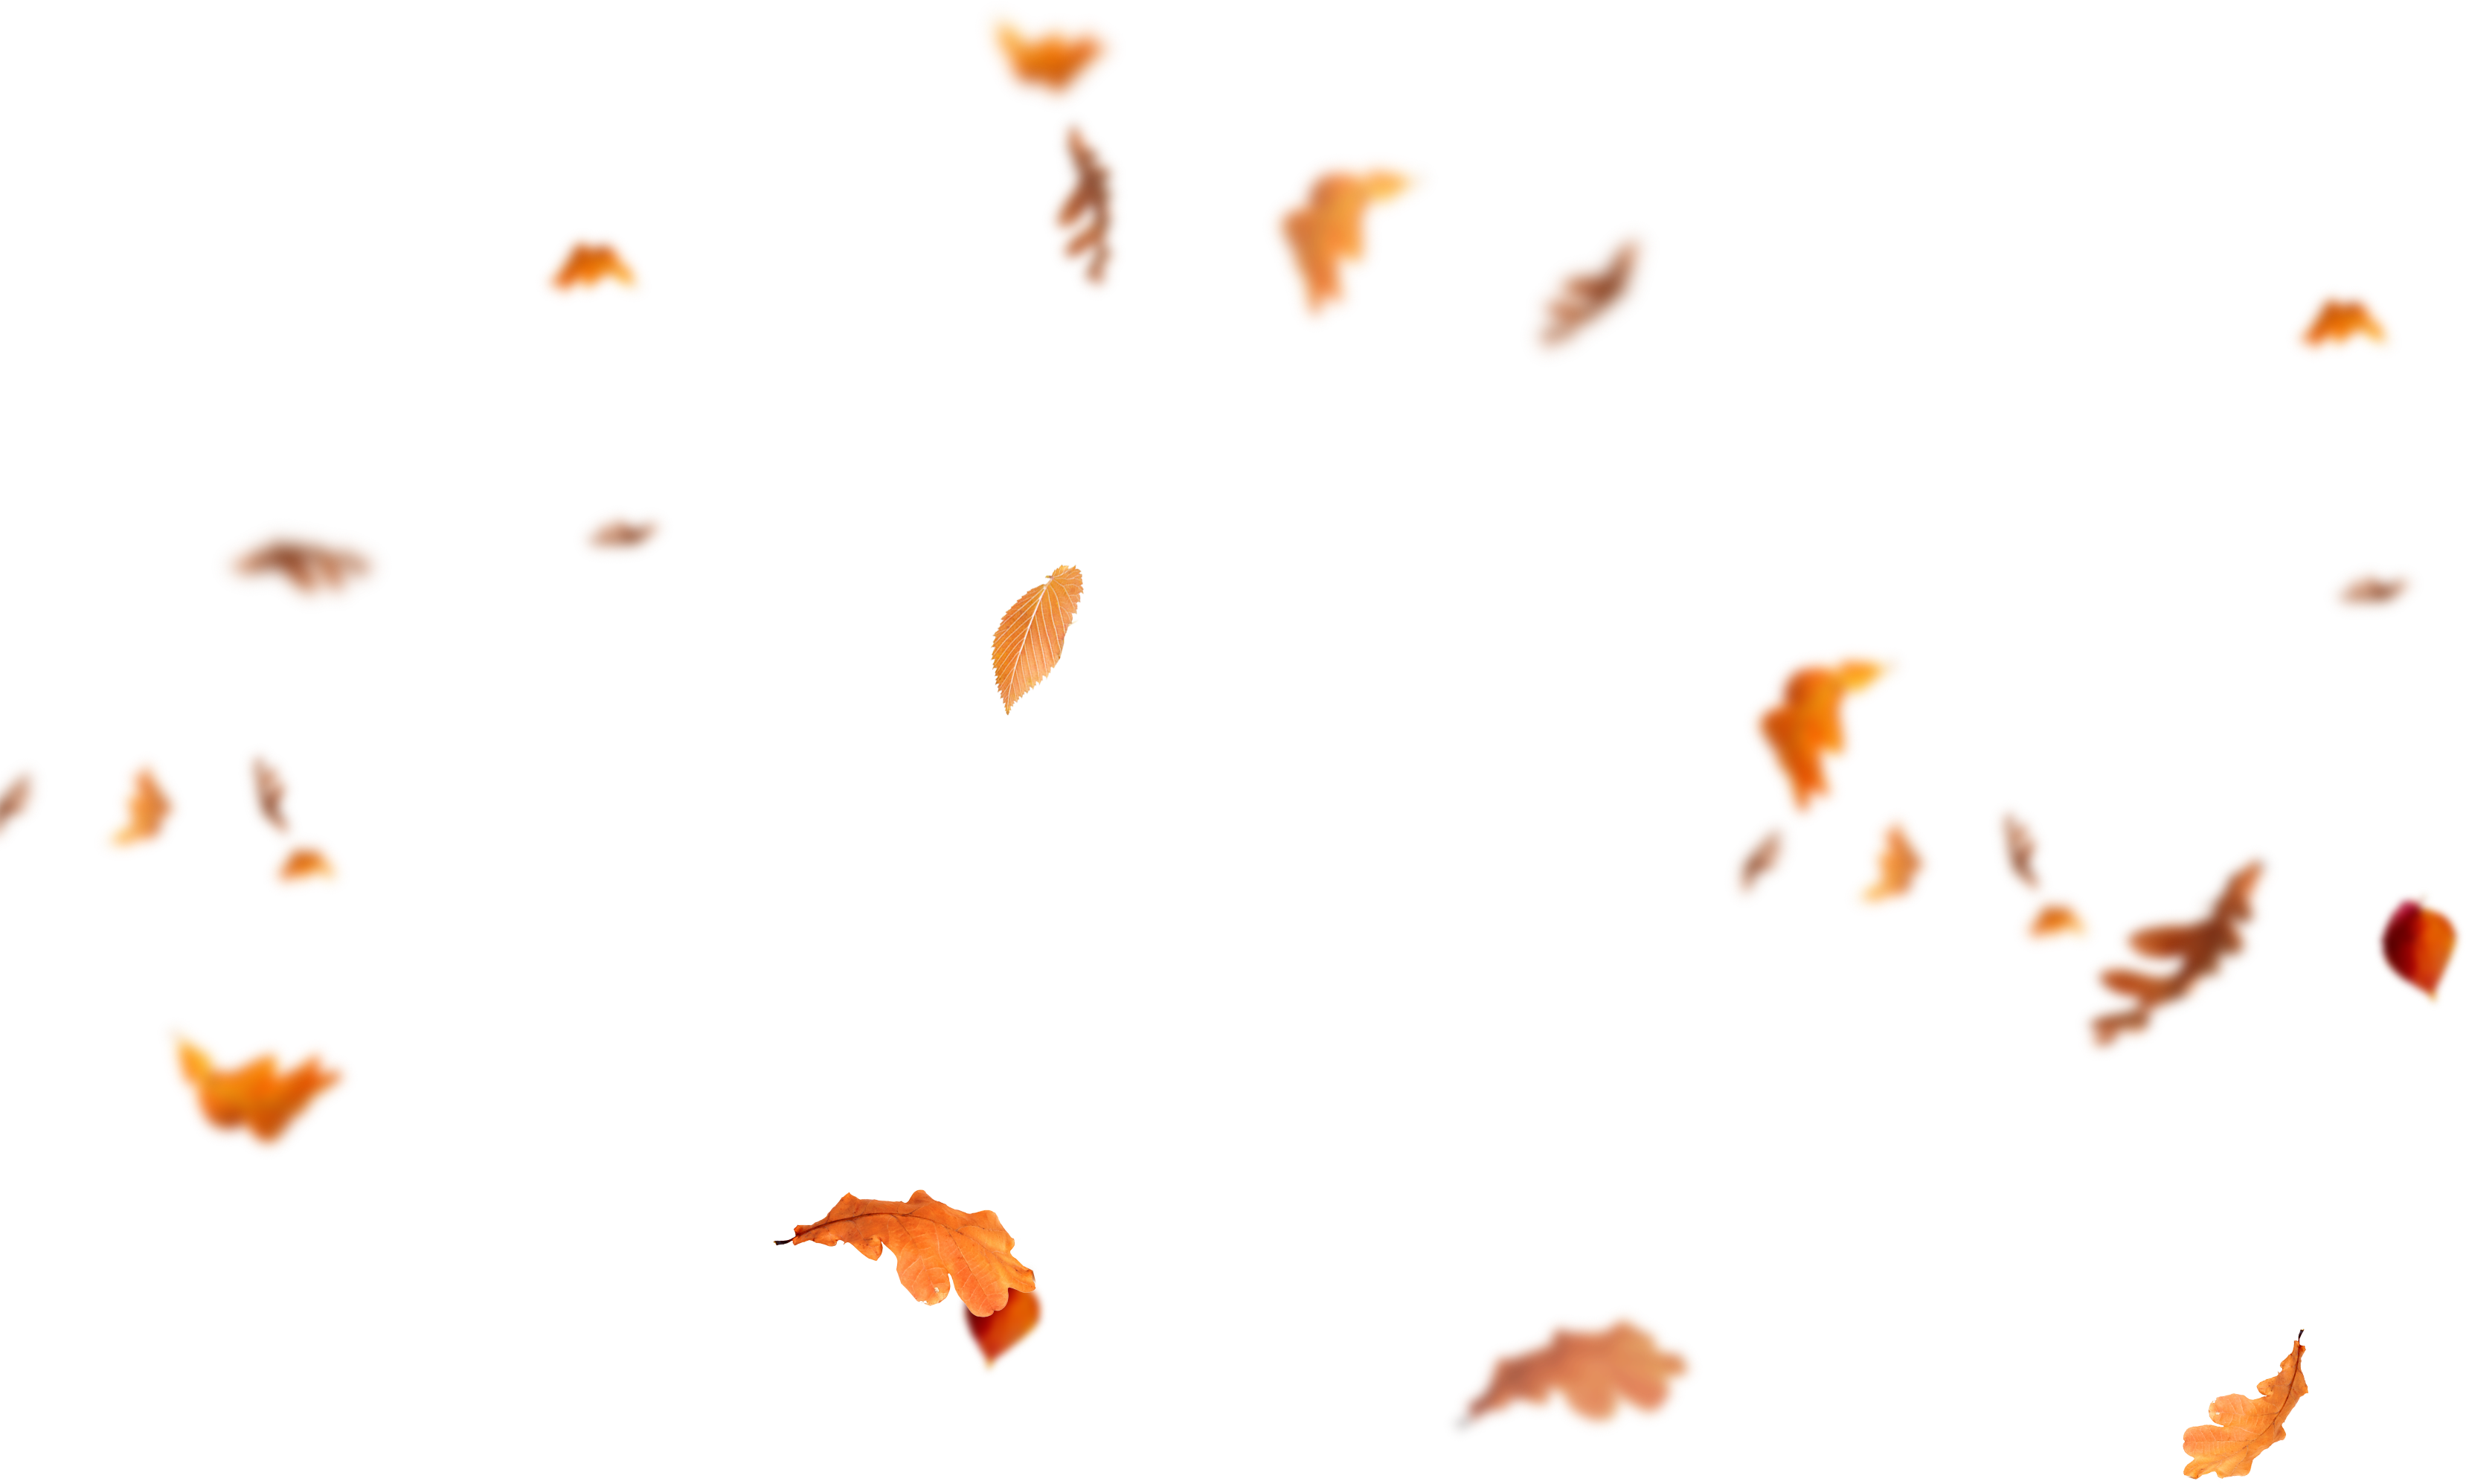 Download Falling Leaves Png Images Flying Autumn Leaf Png Free Fall Leaves Png Autumn Leaves Png